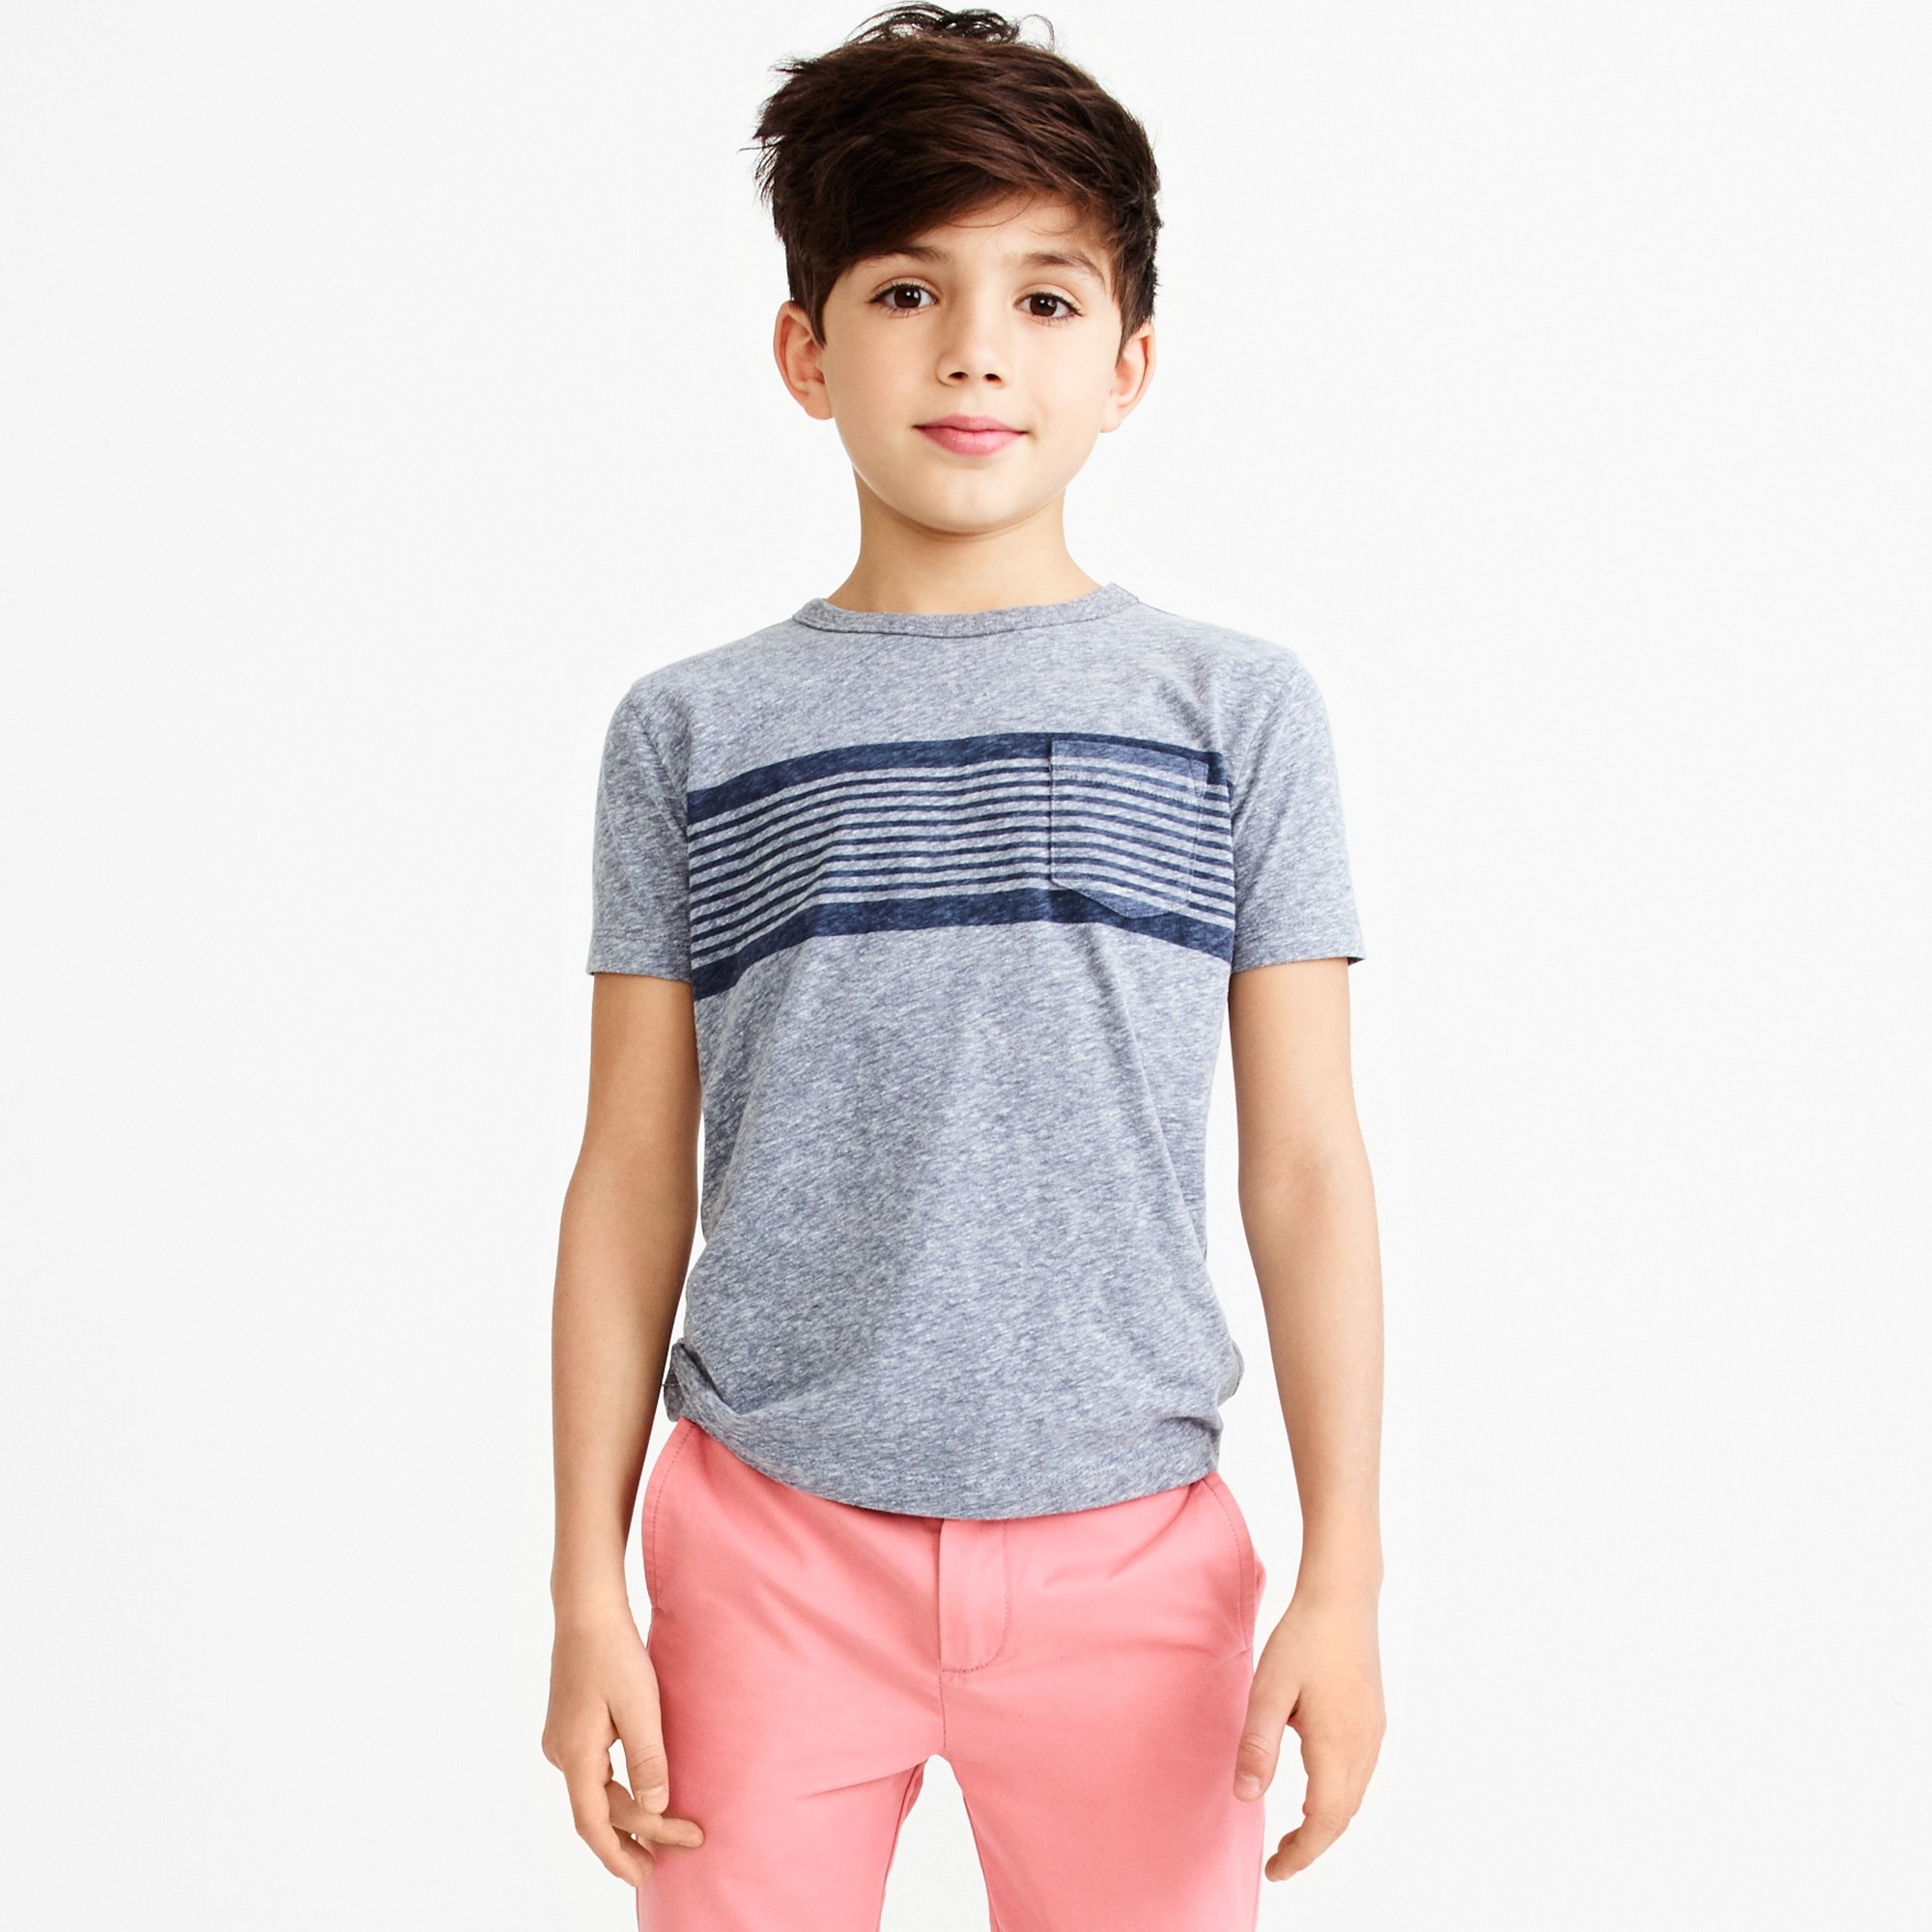 Boys' chest stripe jersey T-shirt factoryboys new arrivals c